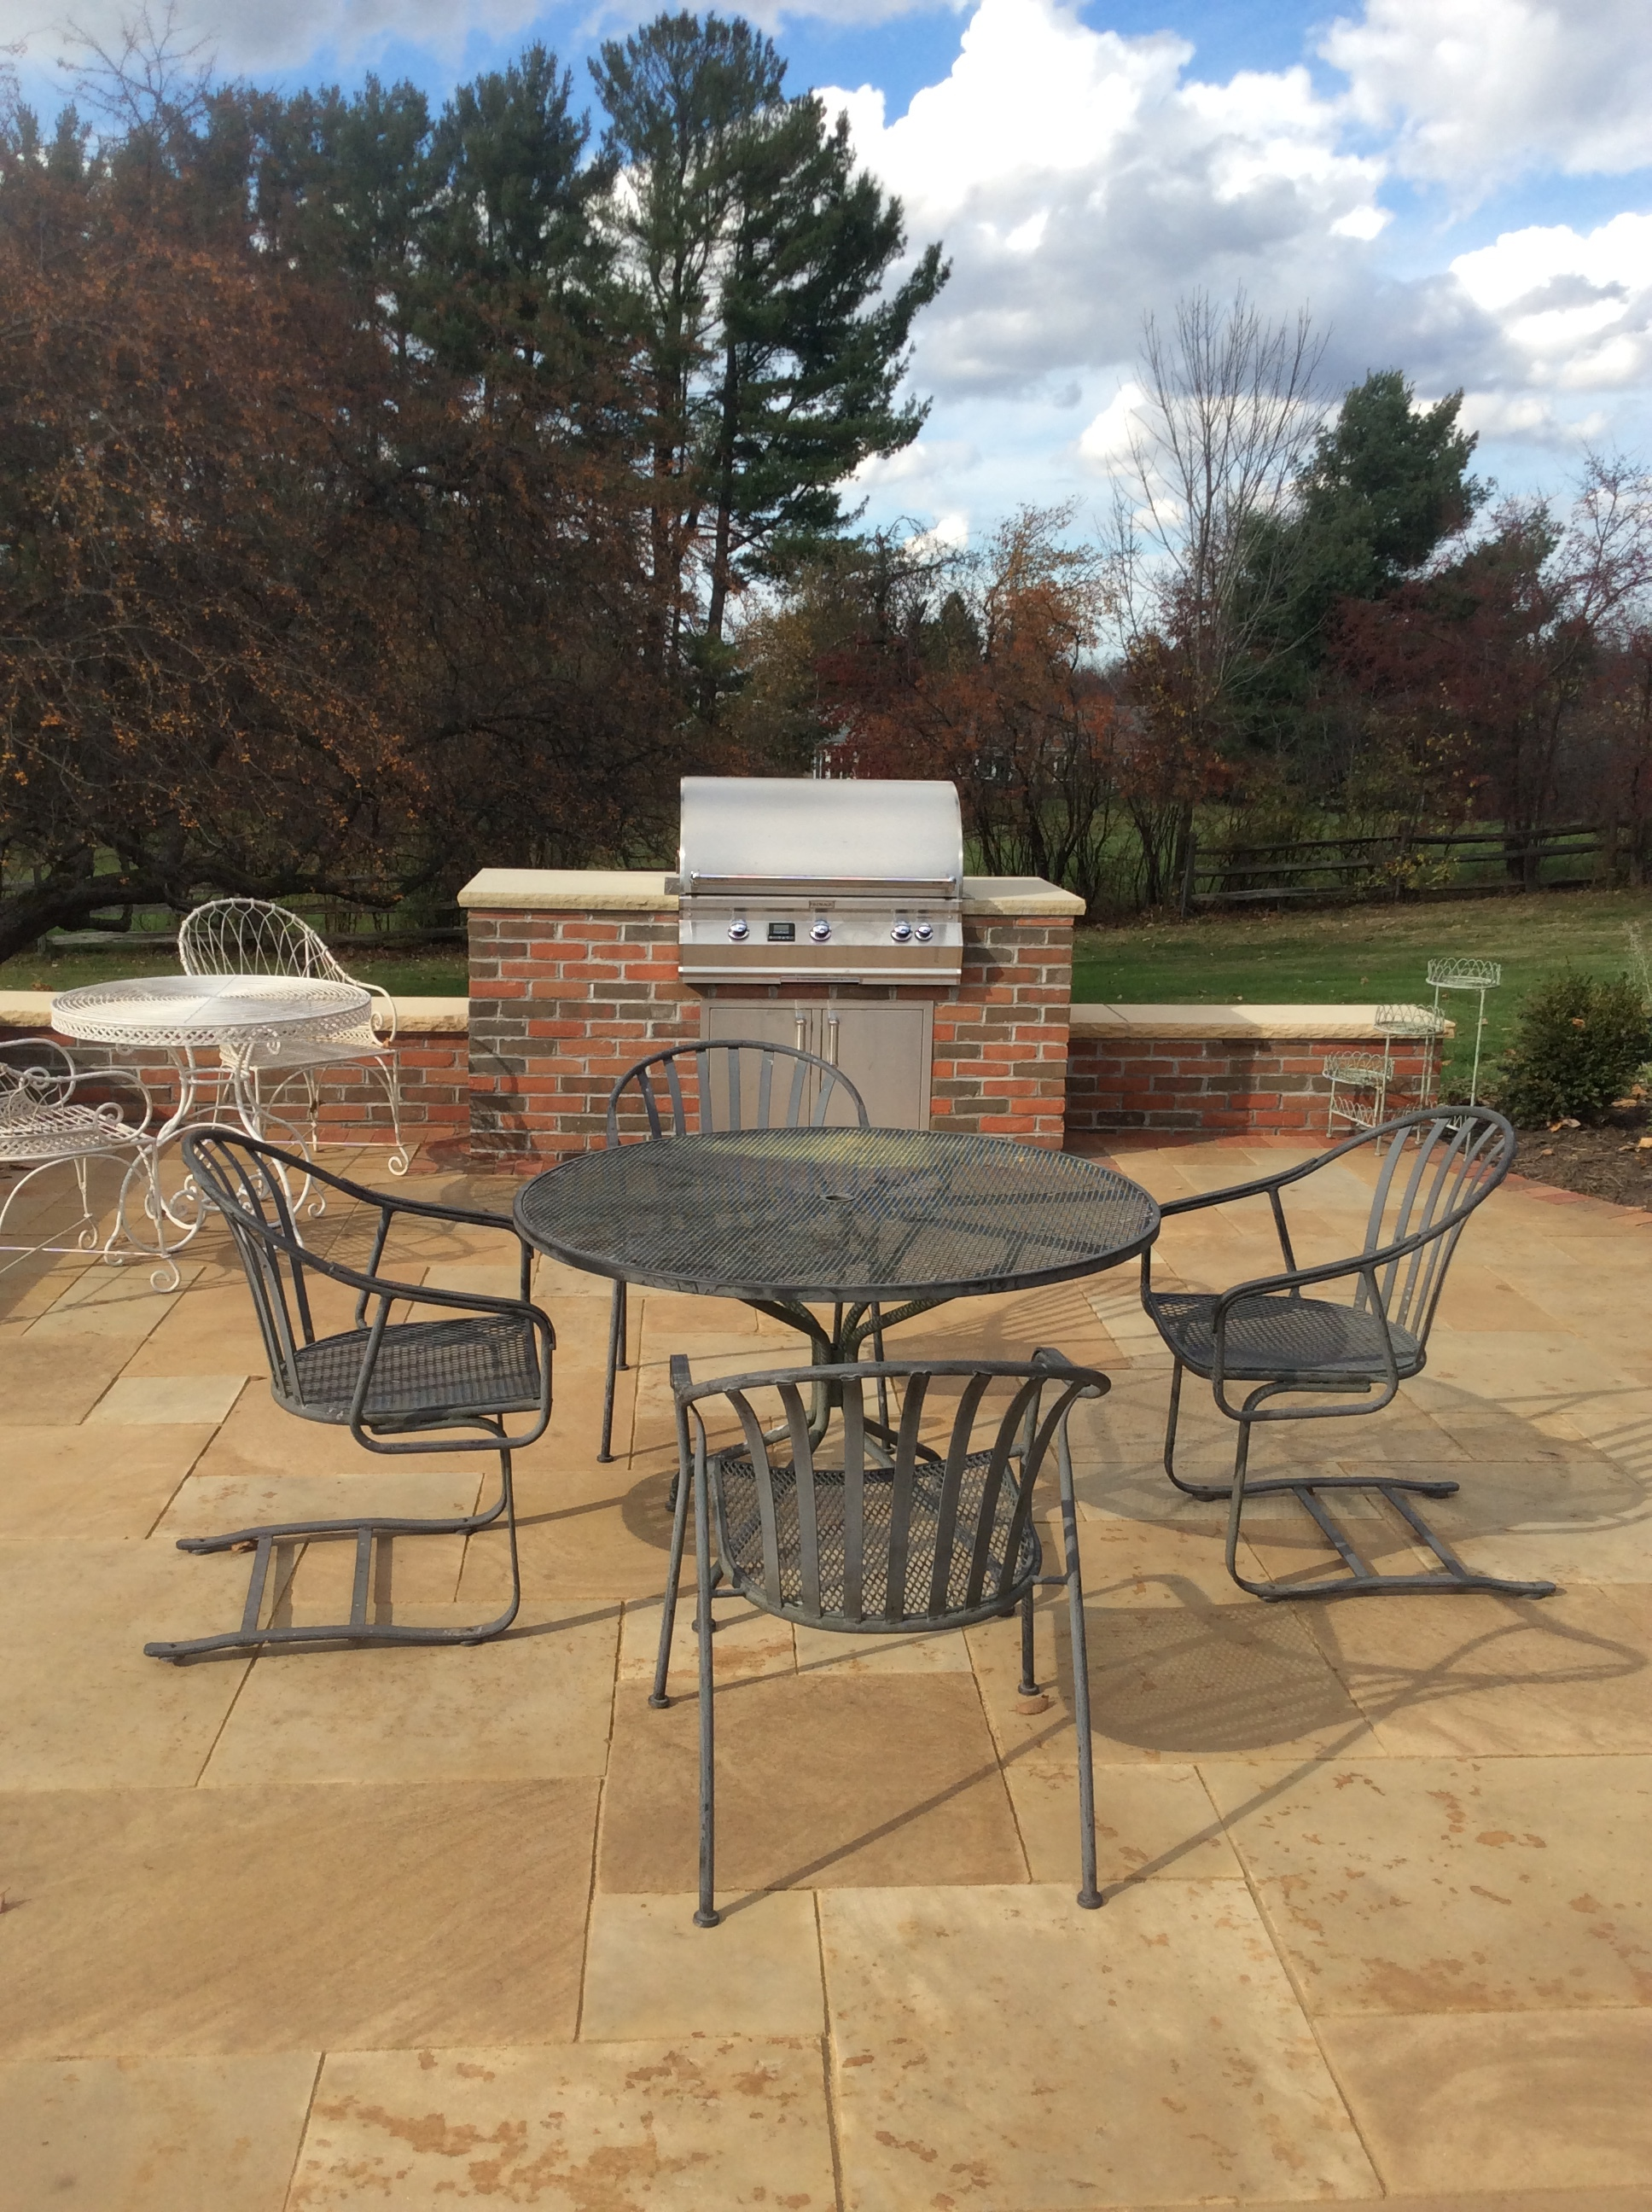 Landscape design with Unilock patio pavers in Bainbridge Township, OH